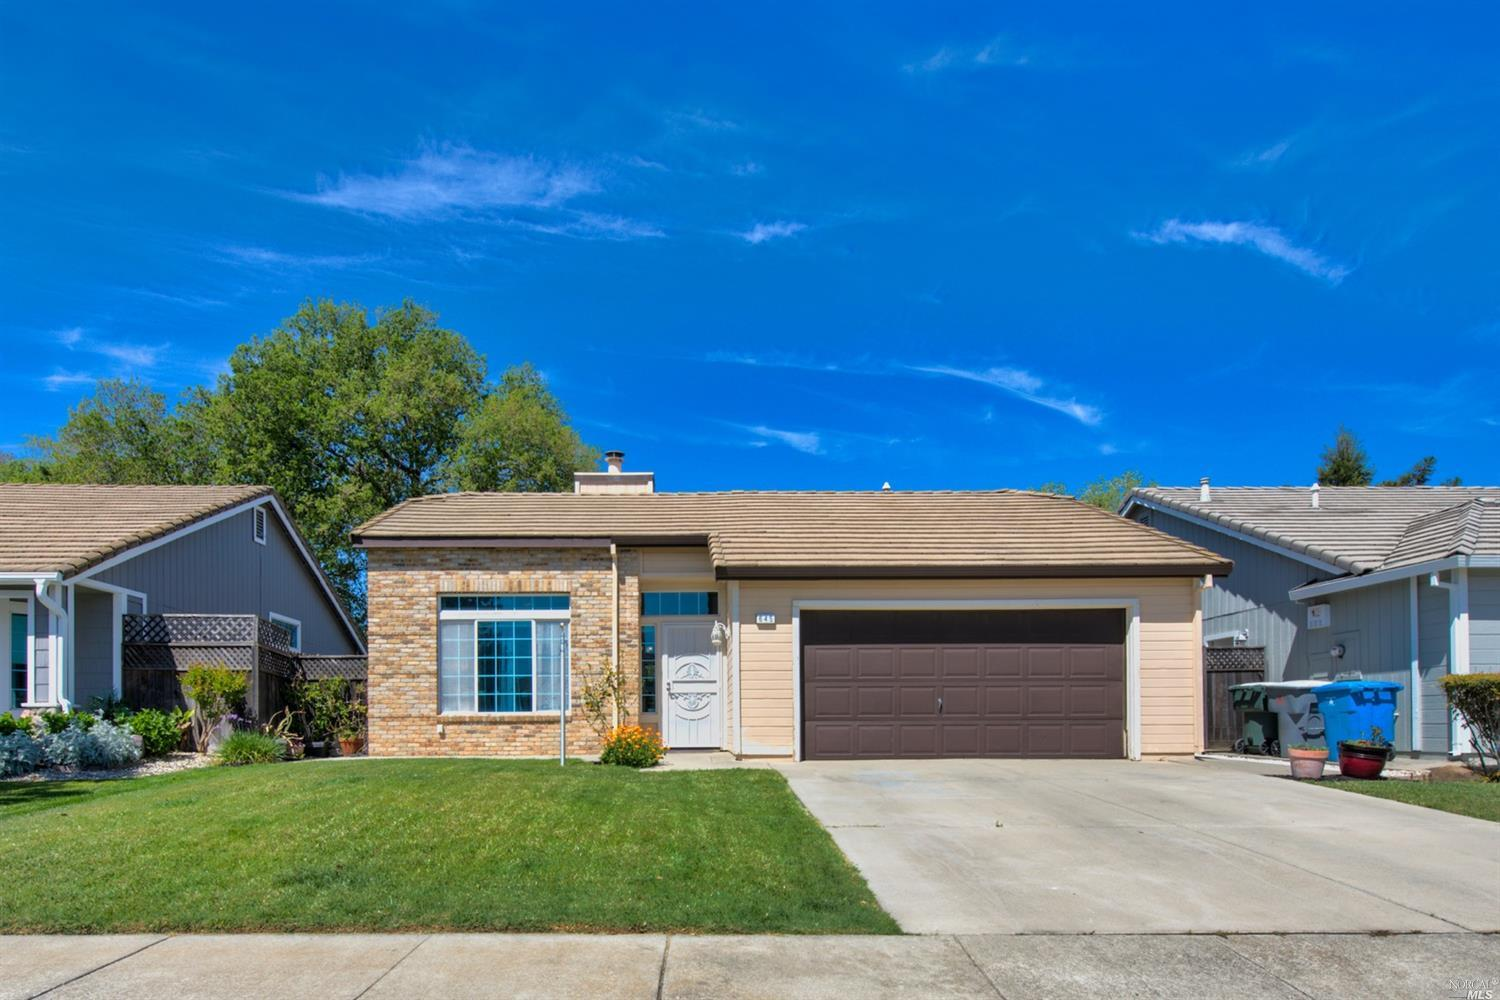 Cute, clean, bright, well-located, and ready for you! This charming home features a desirable floor